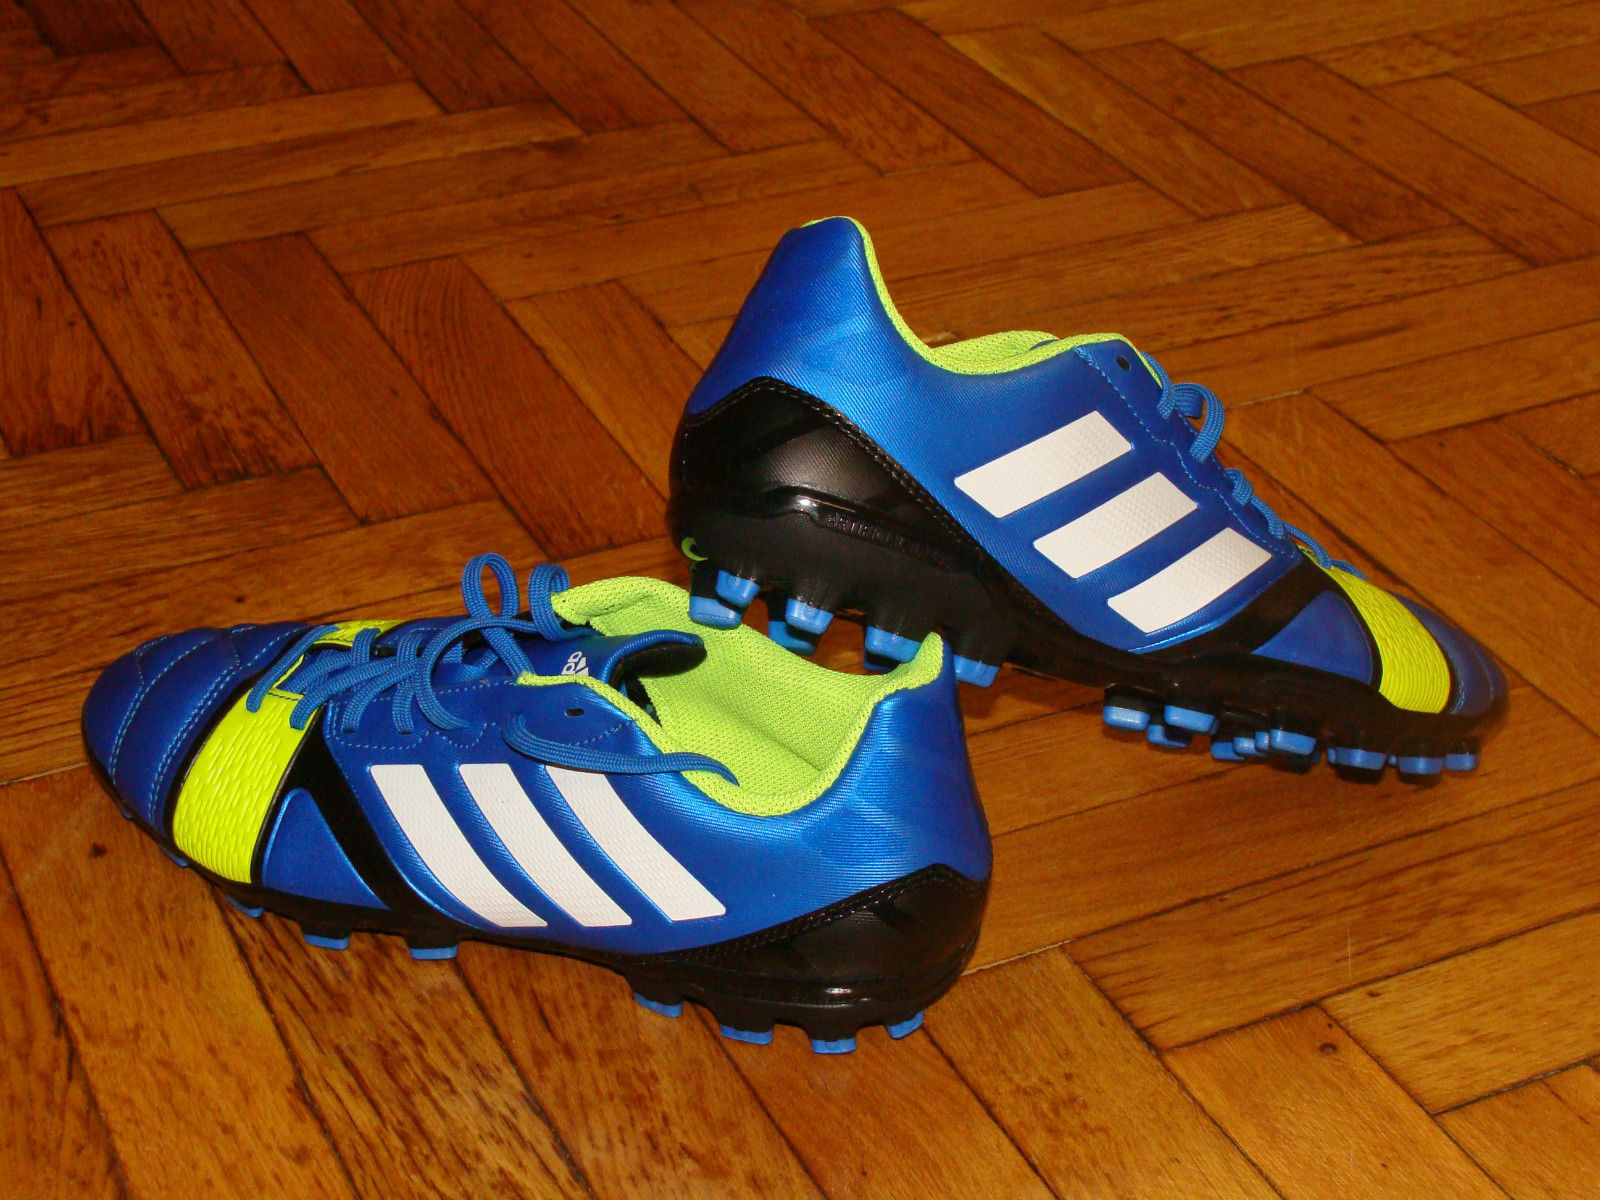 Adidas Adidas Adidas Soccer Boots Football Nitrocharge 3.0 New Artificial Grass Shoes 0f1e09